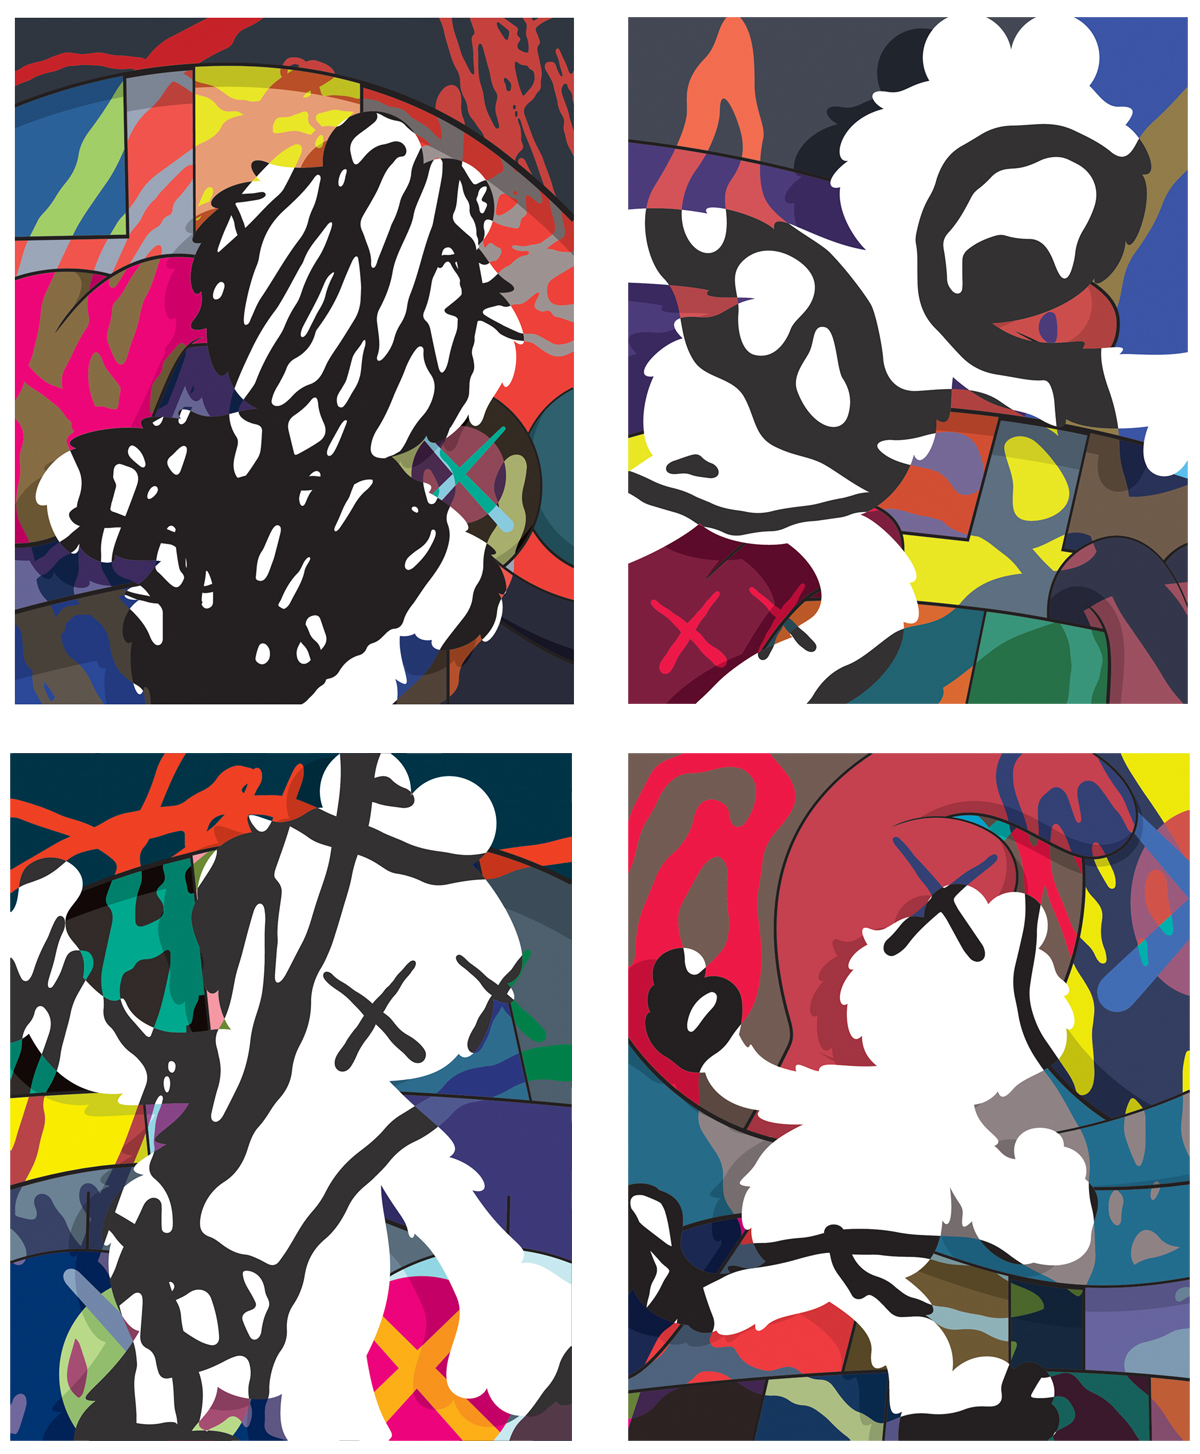 Survival Machine canvases, 2015, KAWS